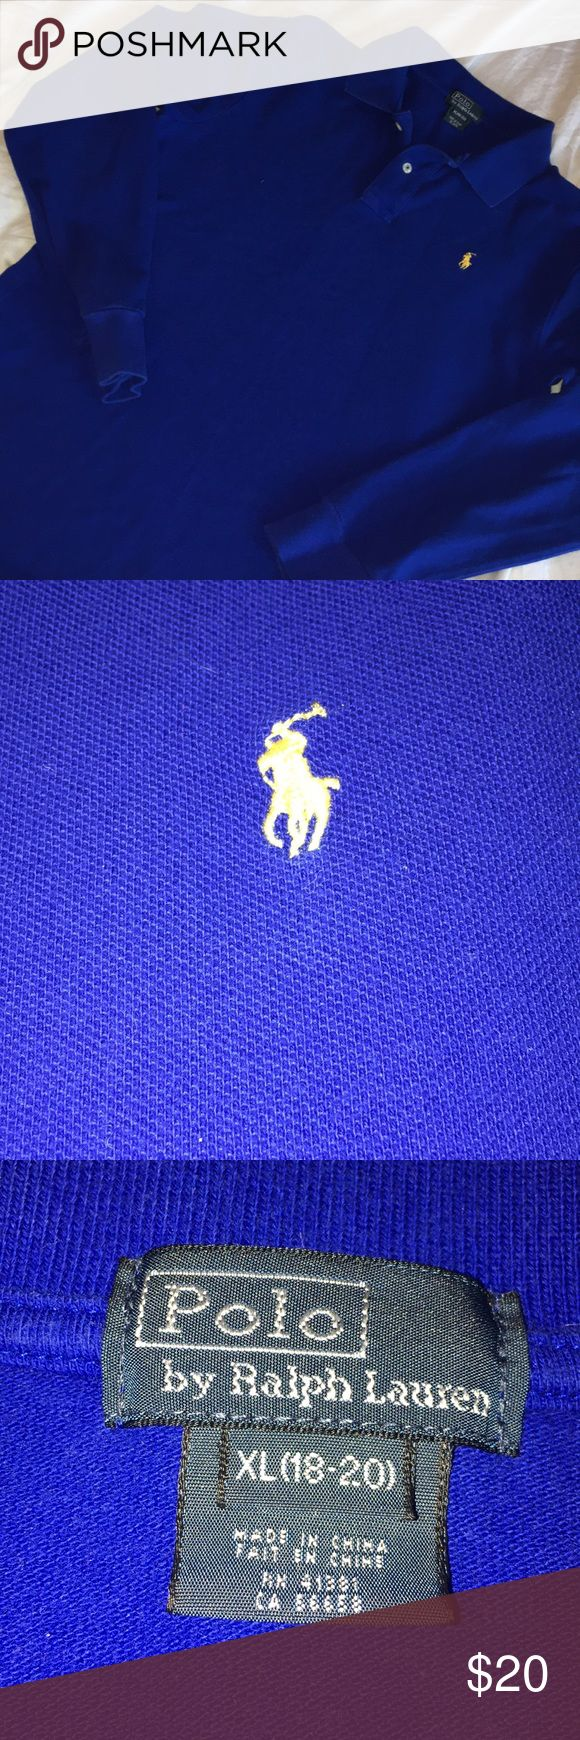 Boys long sleeve polo shirt XL boys long sleeve RL polo shirt EUC  My son wore once on Easter for an hour This is perfect shape  Beautiful bright blue almost colbalt in color Polo by Ralph Lauren Shirts & Tops Polos